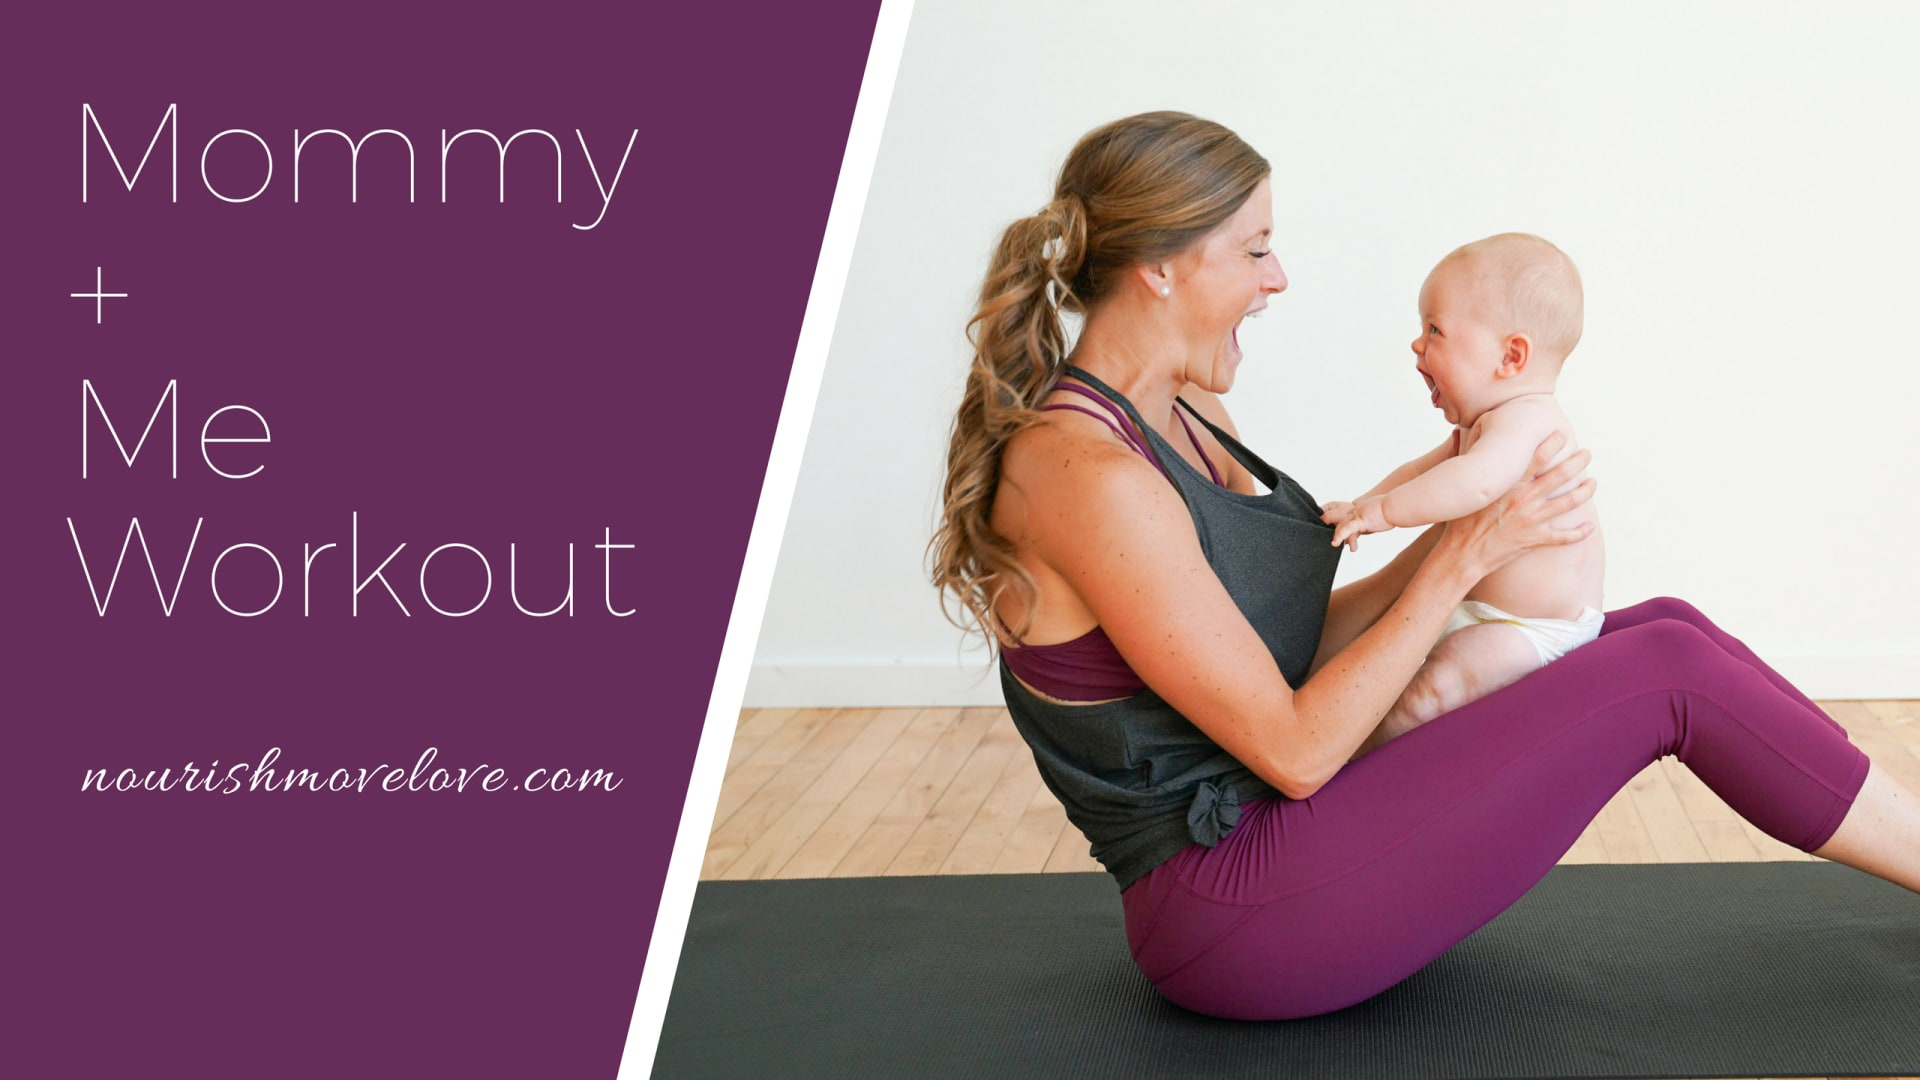 Mama beauty: fitness exercises with the baby (video)